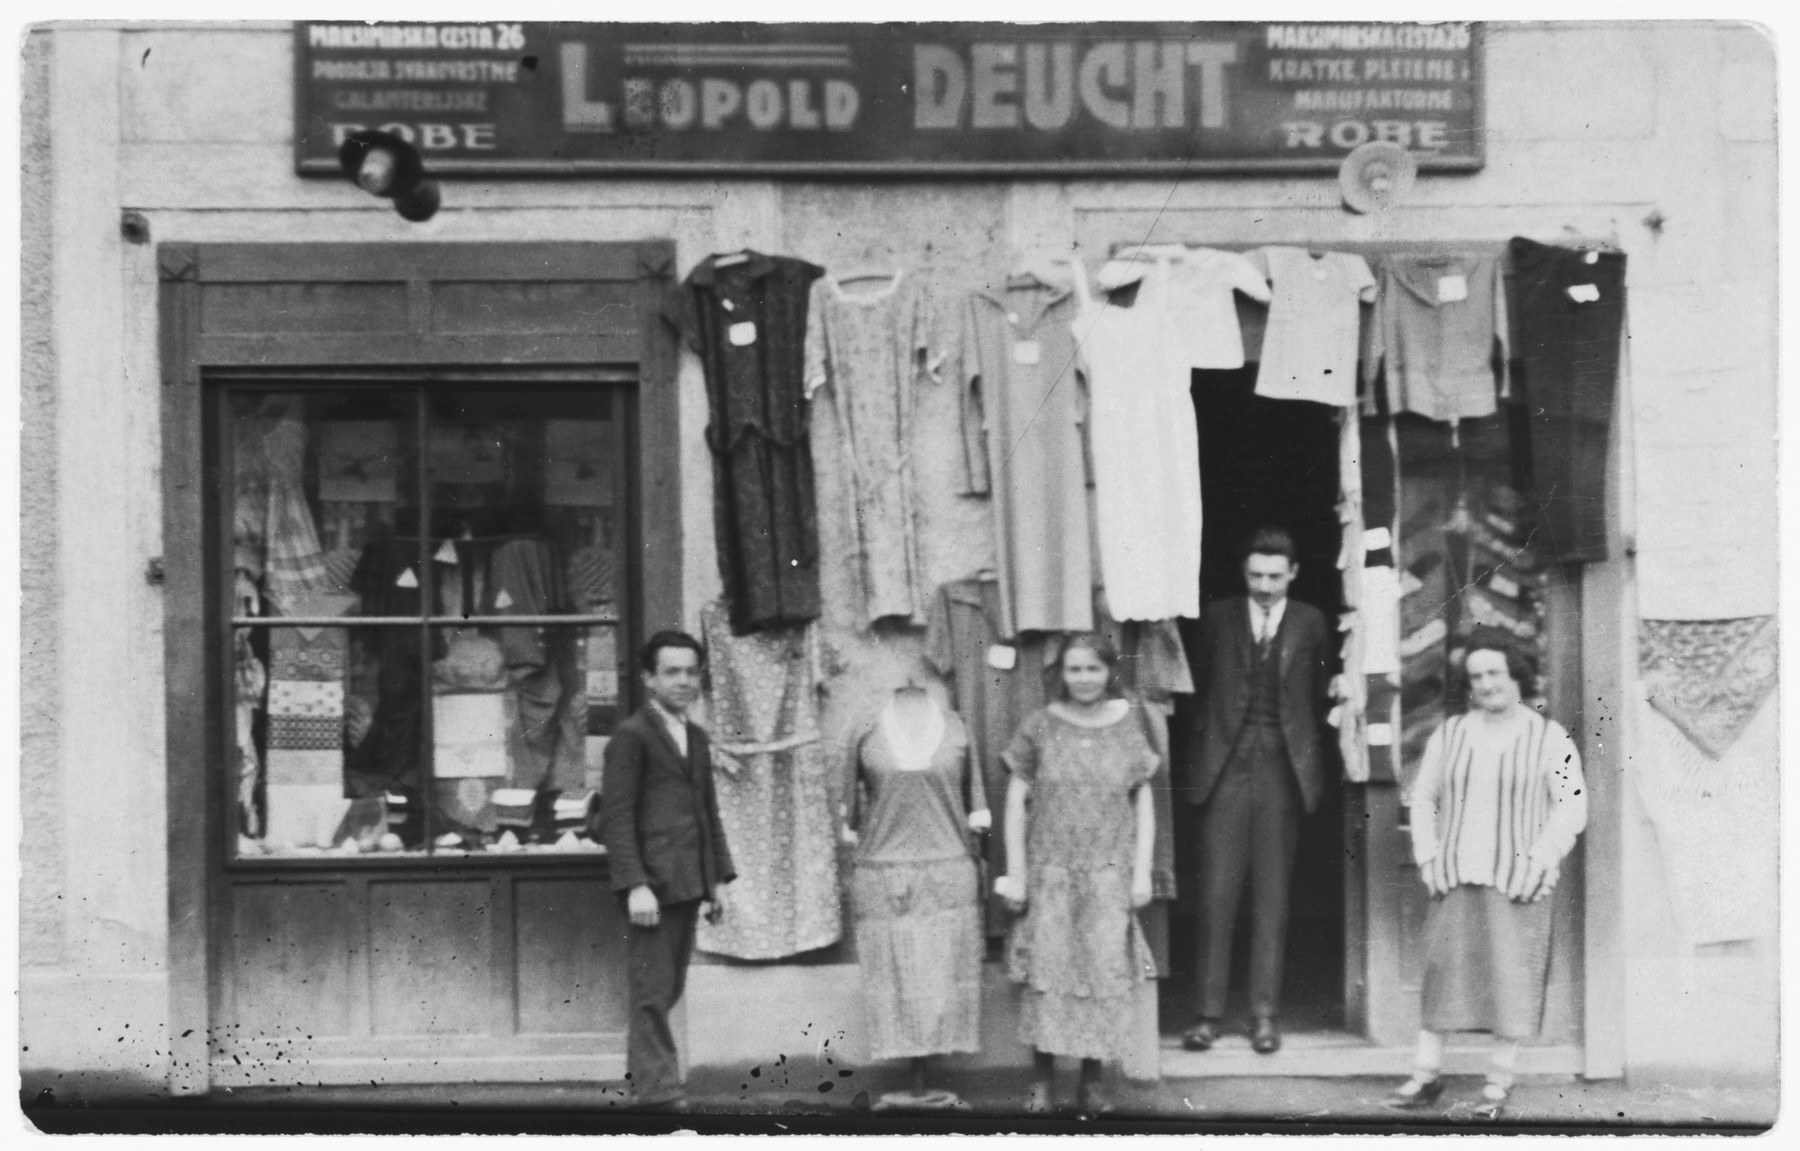 Four people stand outside Leopold Deucht's clothing store.  [The donor does not know who is in the photo but suspects they are related to her uncle Joseph Deucht who perished.]